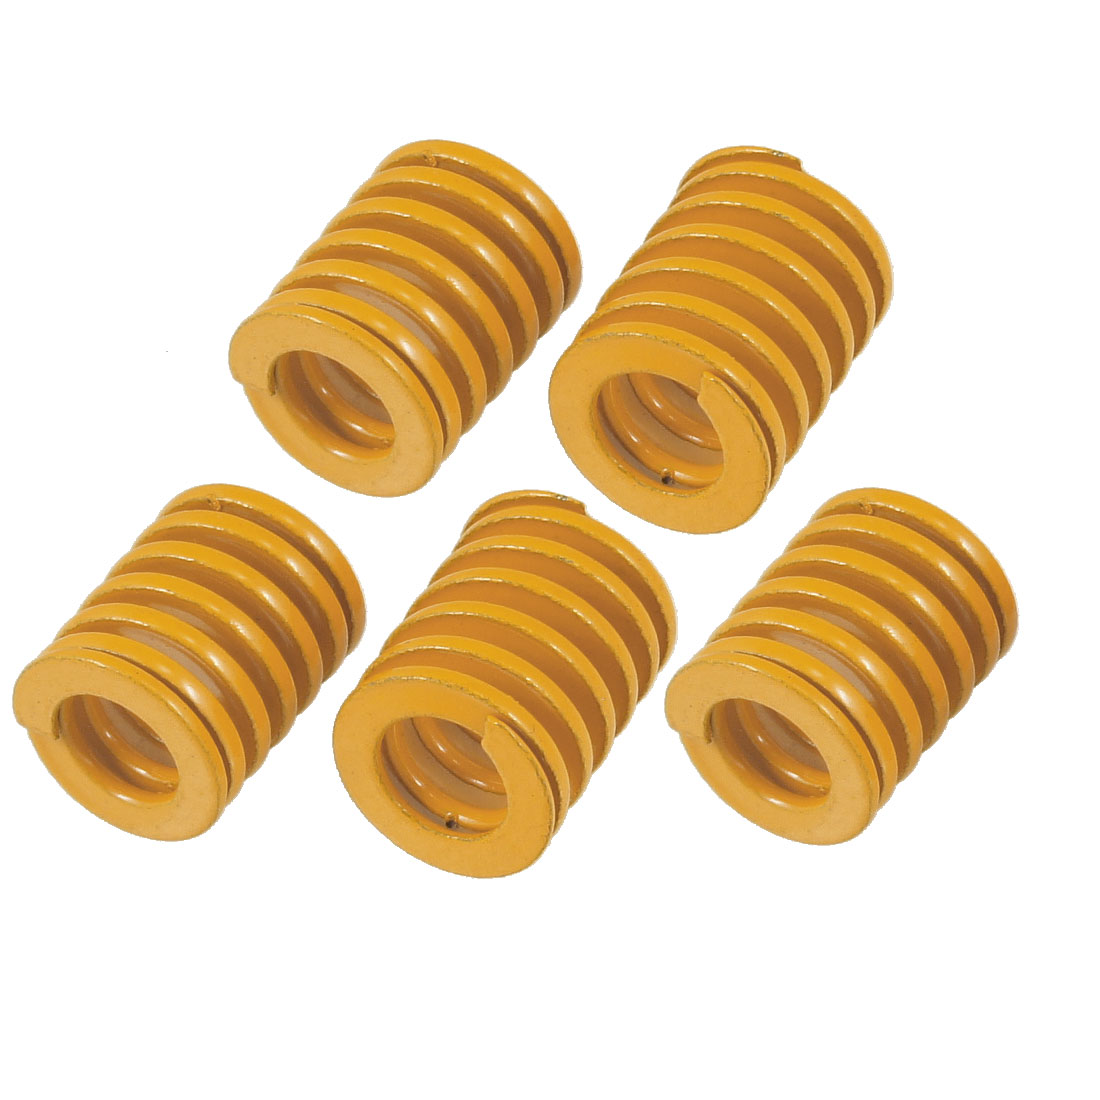 Orange 16mm x 9mm x 20mm Rectangular Section Mould Die Spring 5 Pcs